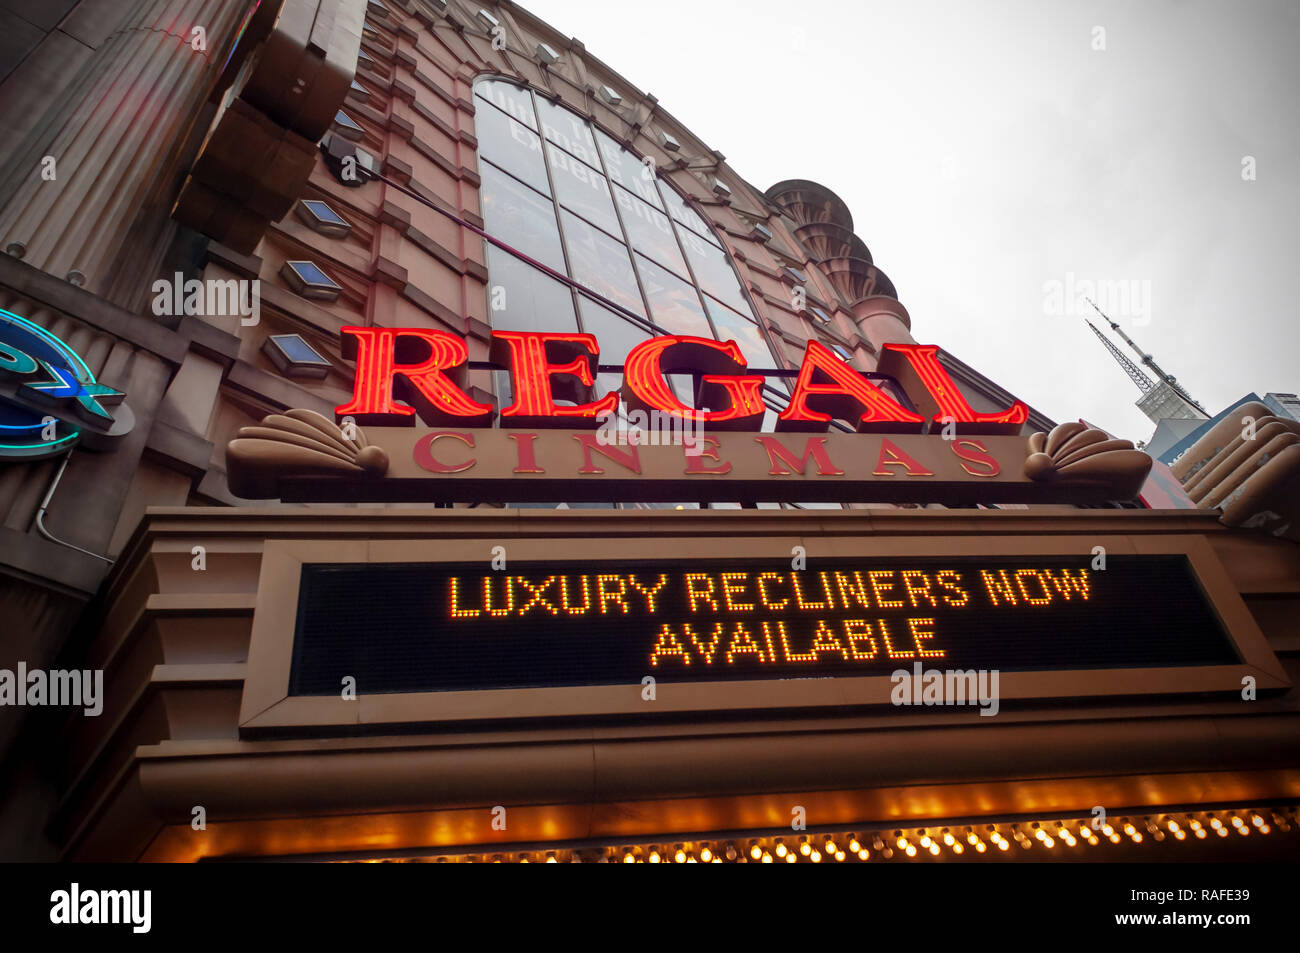 The Regal Cinemas in Times Square in New York on Monday, December 24, 2018. Hollywood has already reported a blockbuster year with over $11.83 billion in ticket sales, citing multiple hits, and there is still the lucrative Christmas week to go to finish off the year. (© Richard B. Levine) Stock Photo